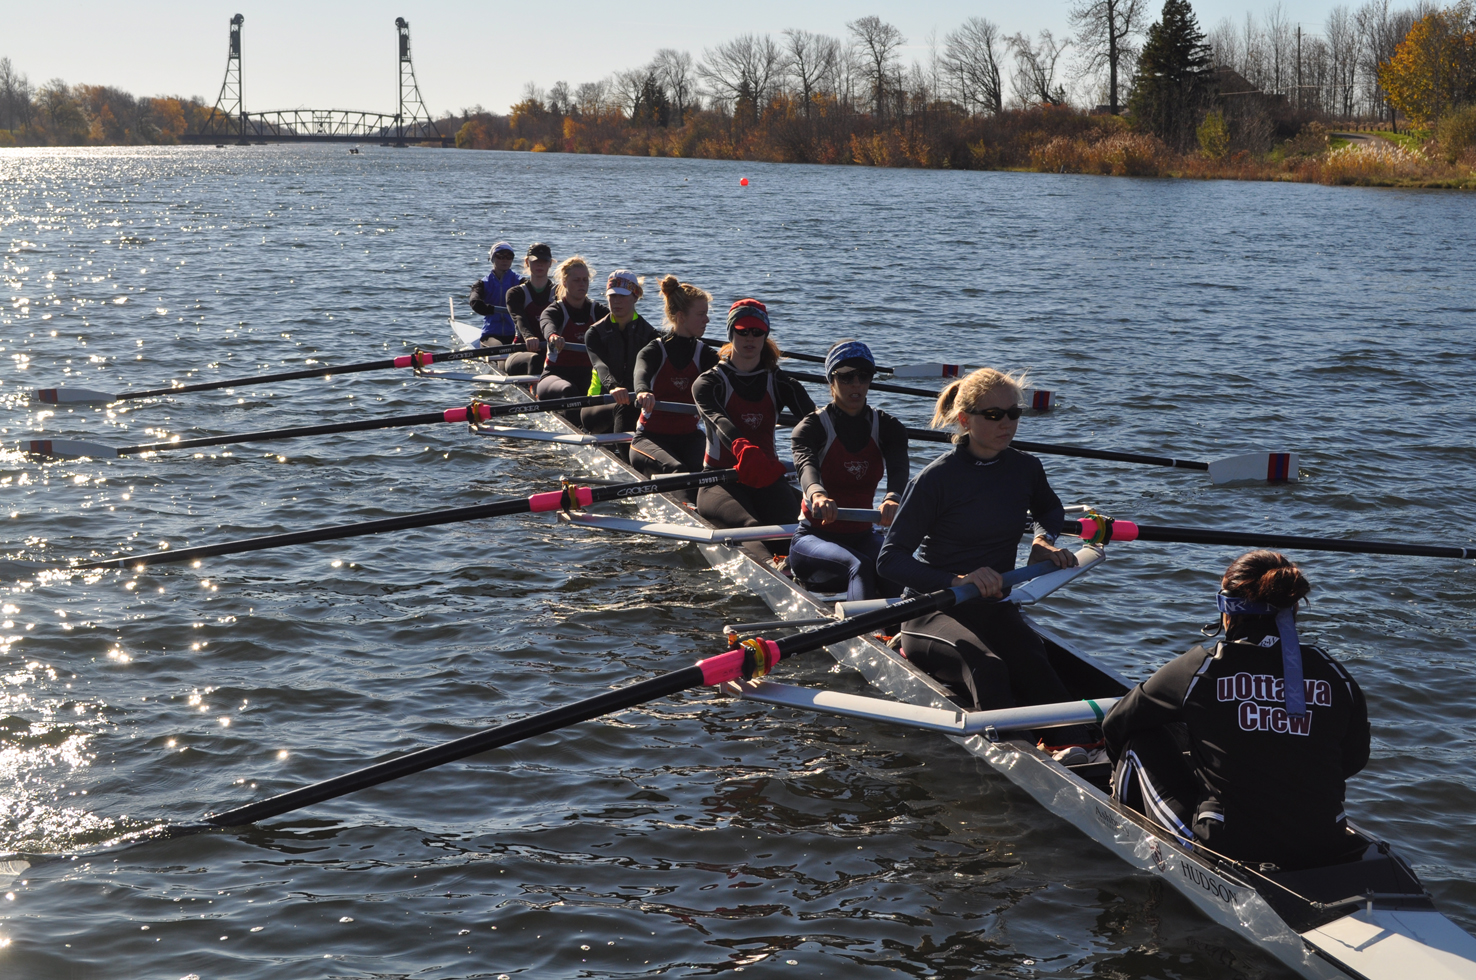 Row, row, row your boat - The FulcrumThe Fulcrum